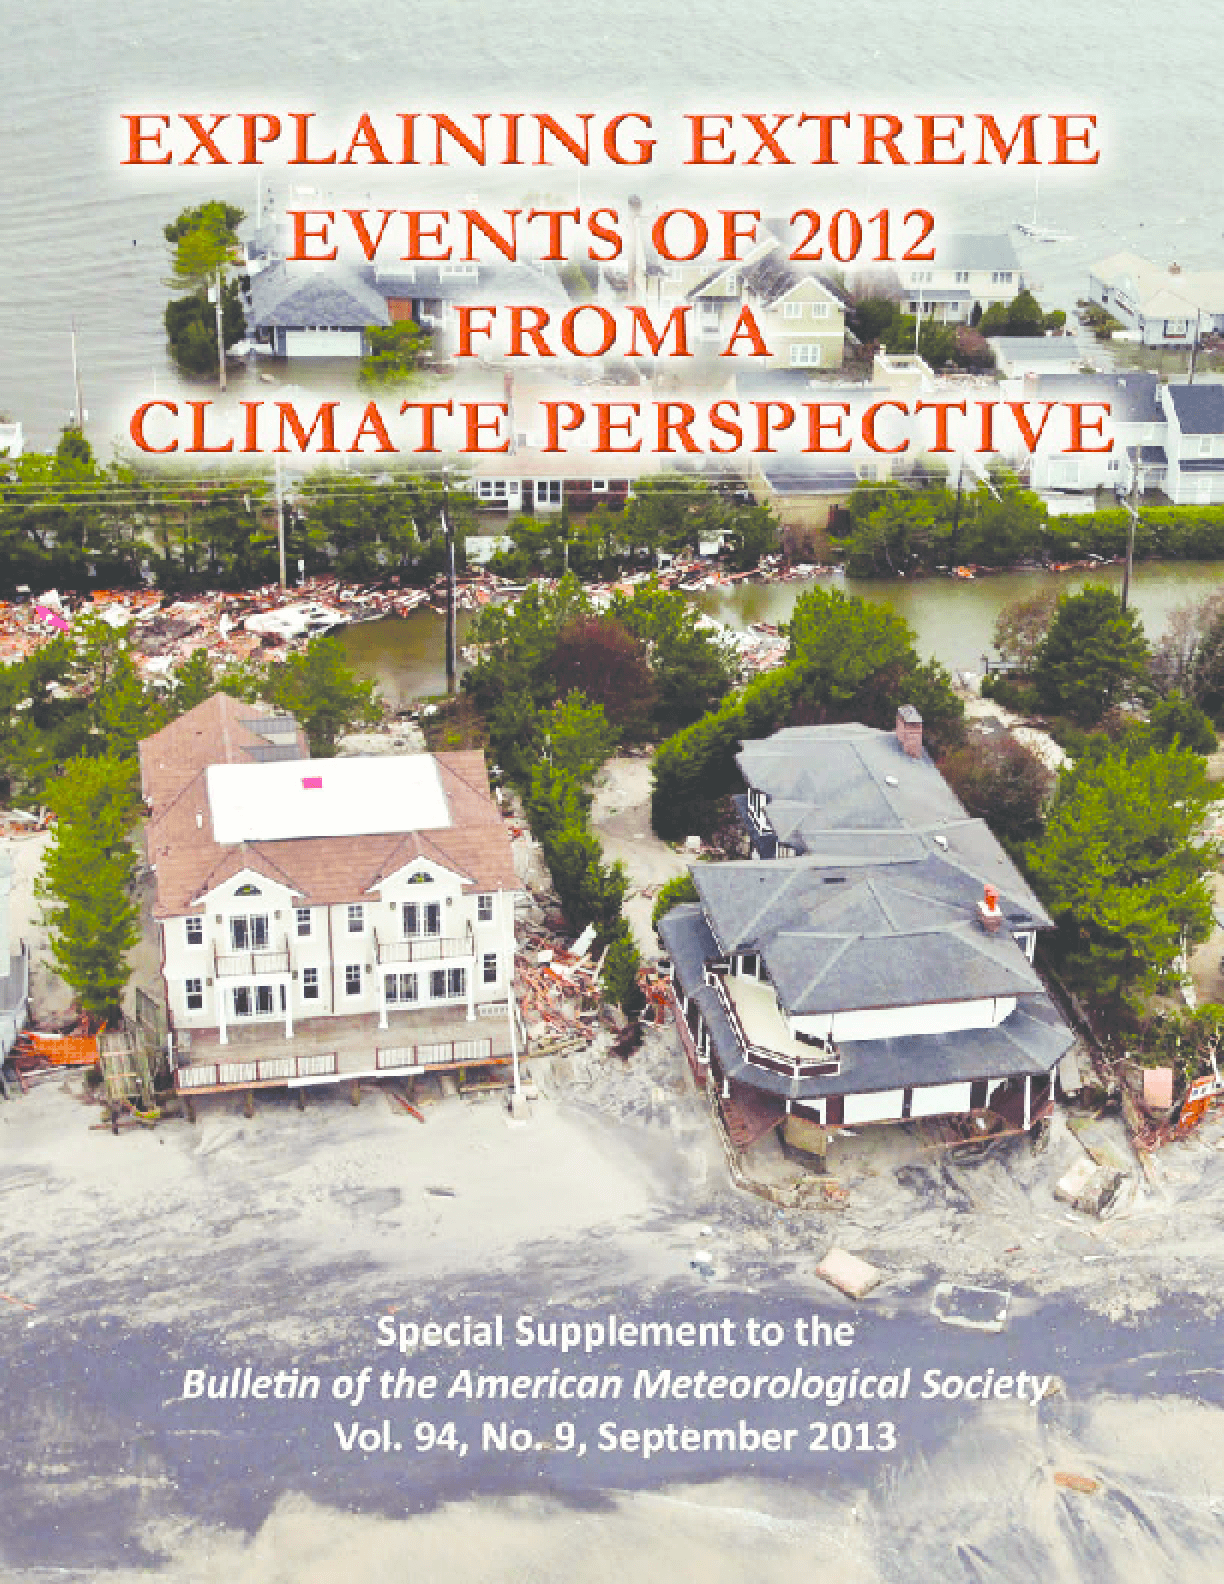 Explaining Extreme Events of 2012 From a Climate Perspective